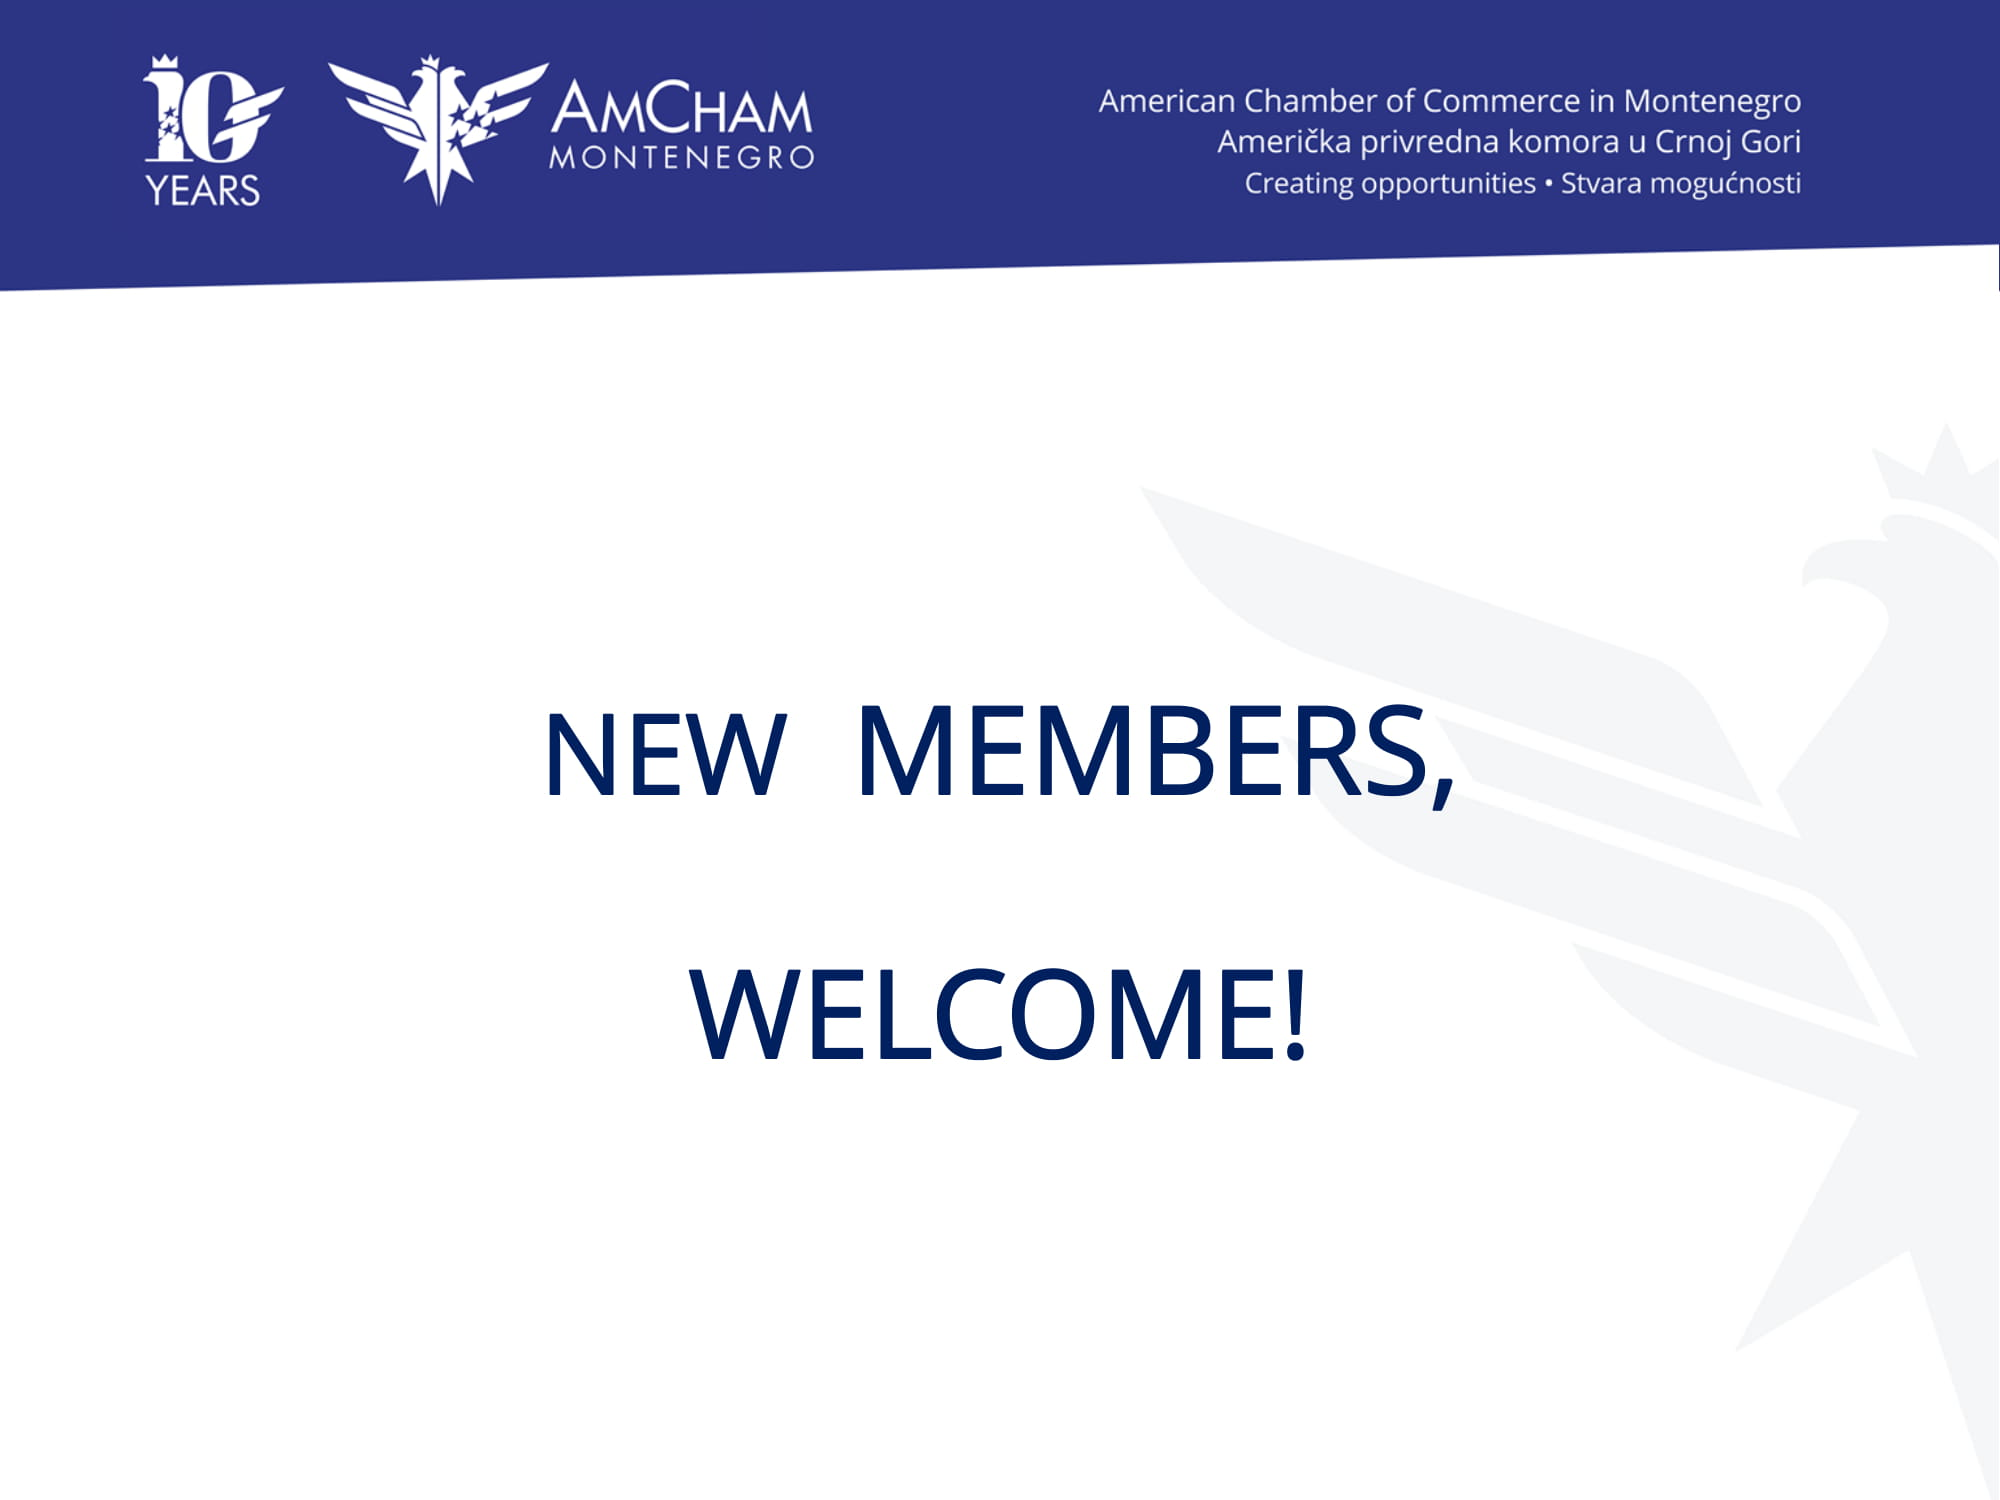 New Members Join Our Community